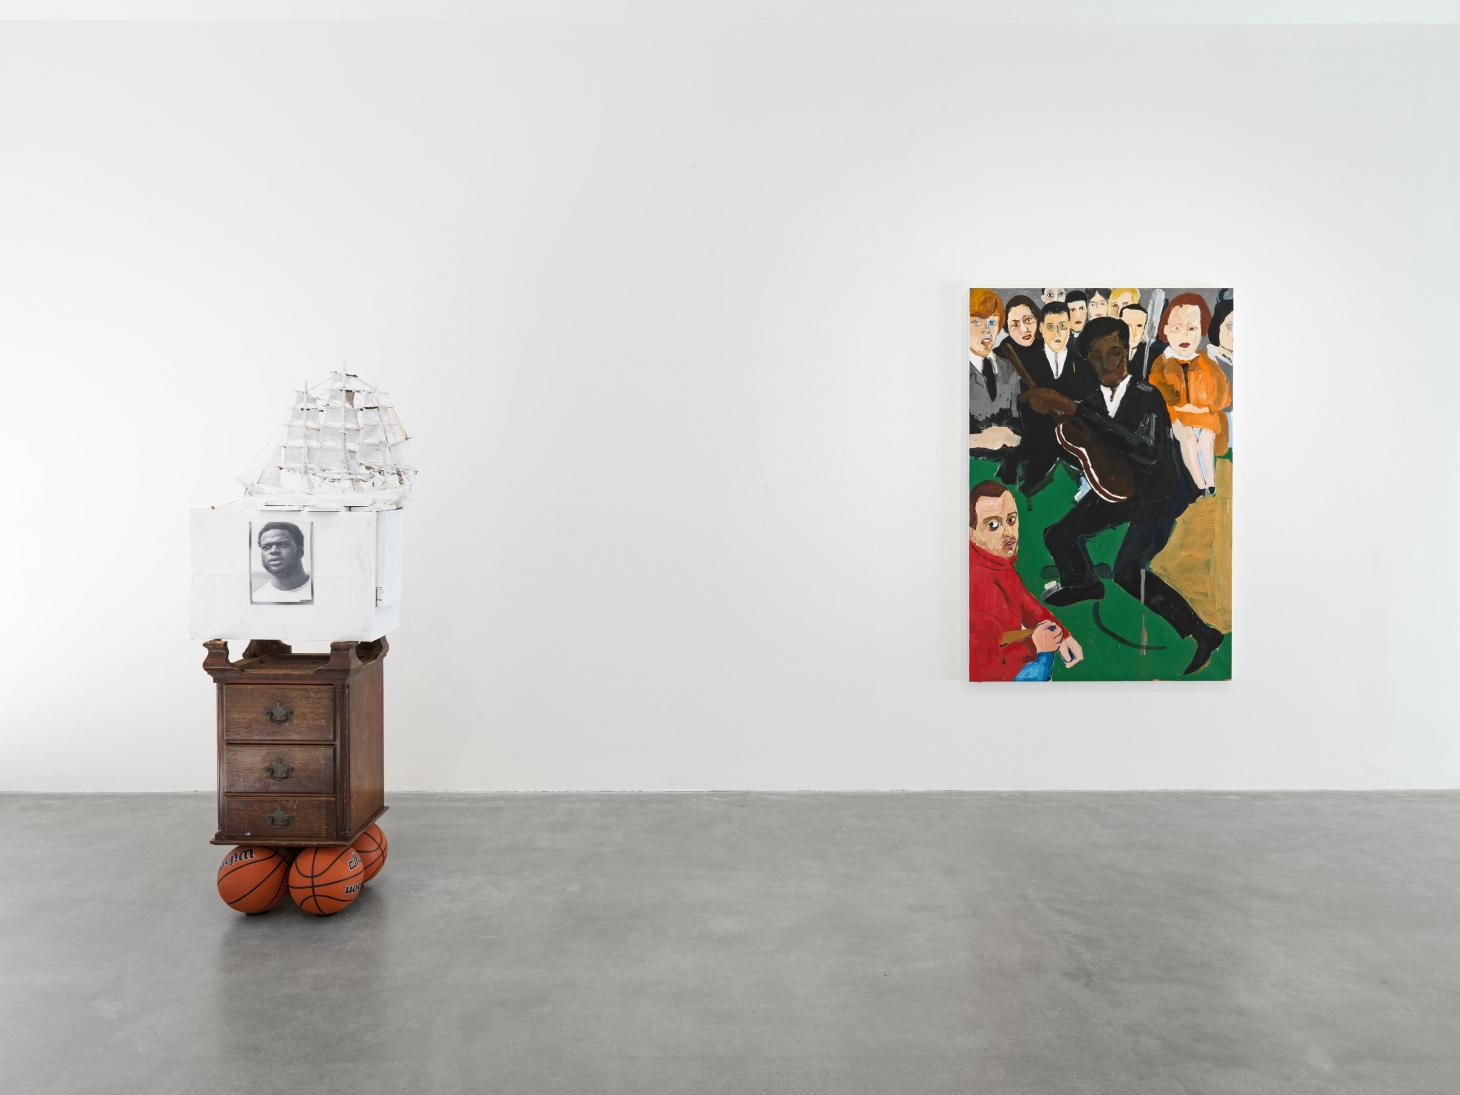 Installation view of Henry Taylor's exhibition at Hauser & Wirth Somerset